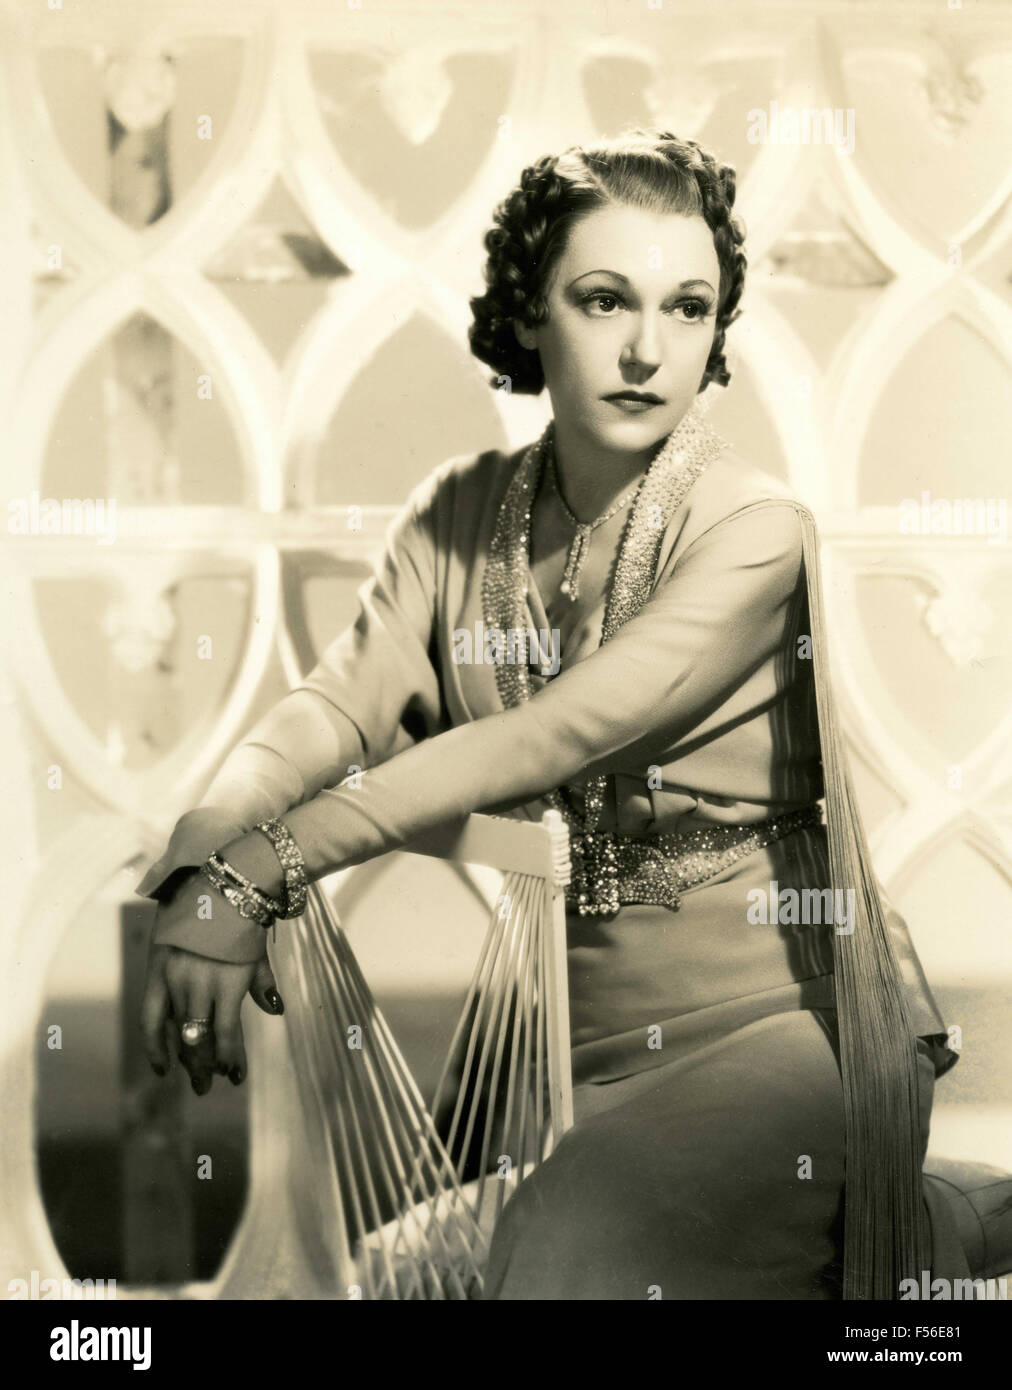 Actress unidentified - Stock Image